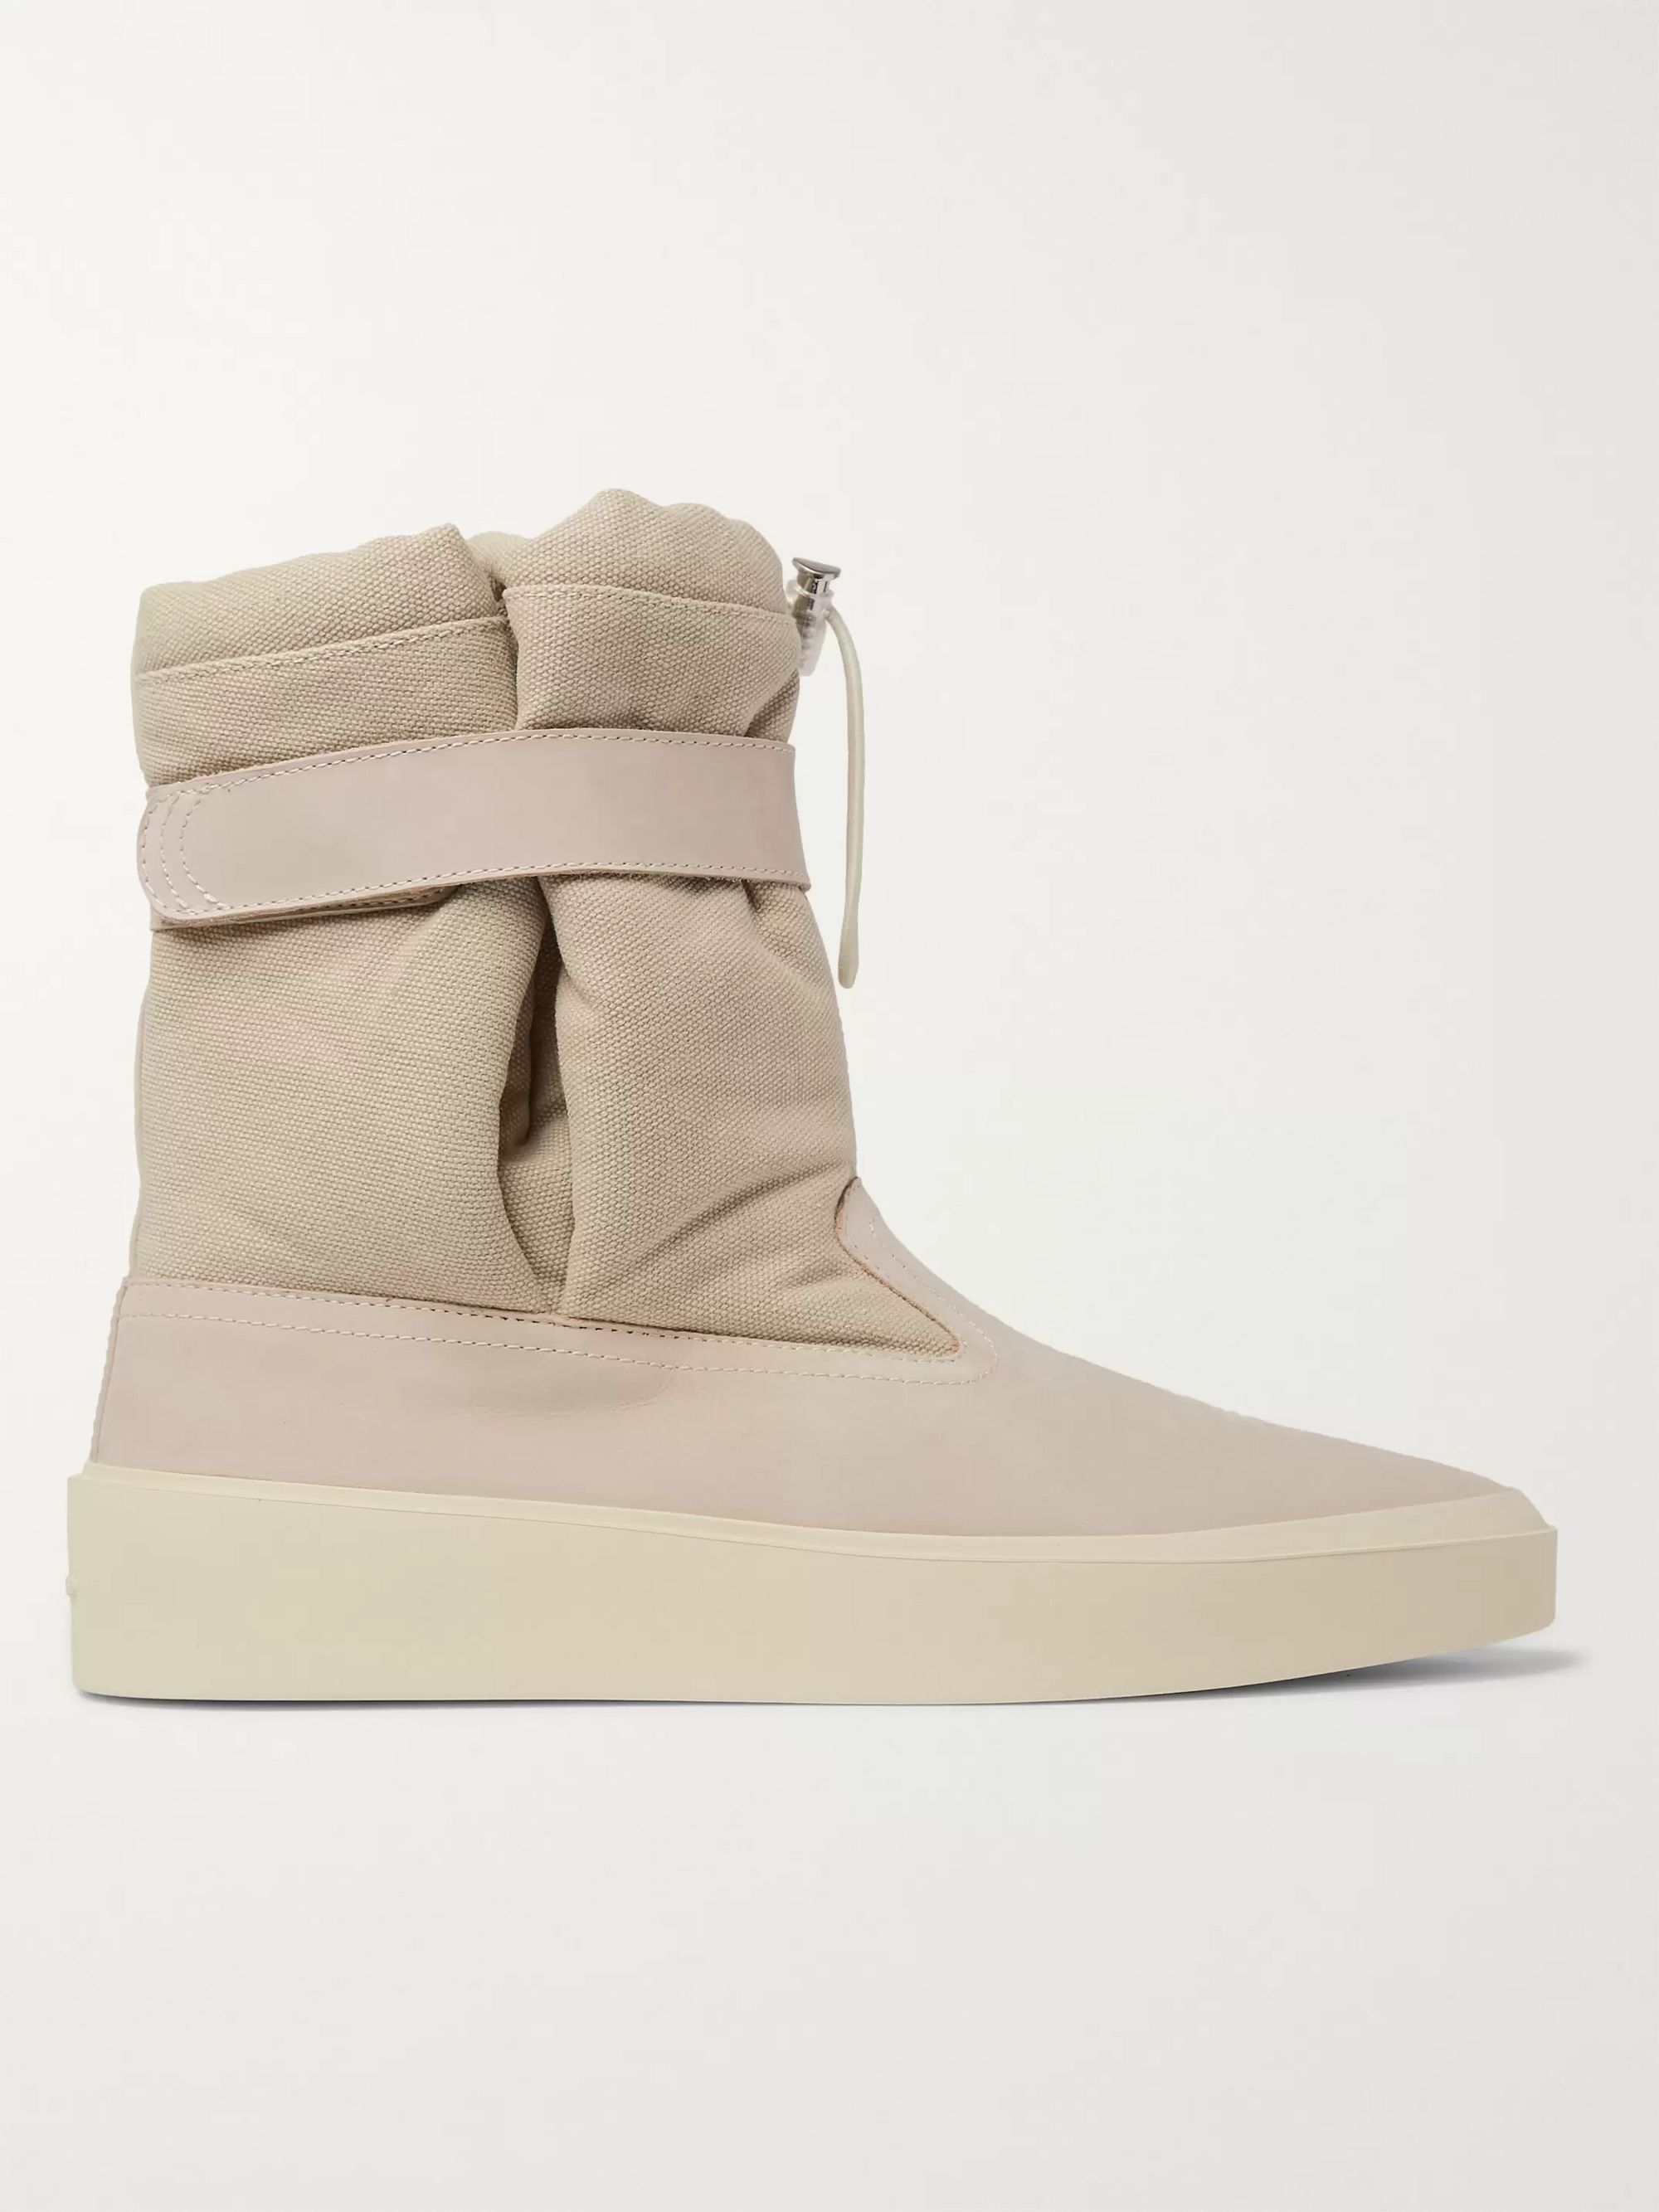 Fear of God Suede and Canvas High-Top Sneakers